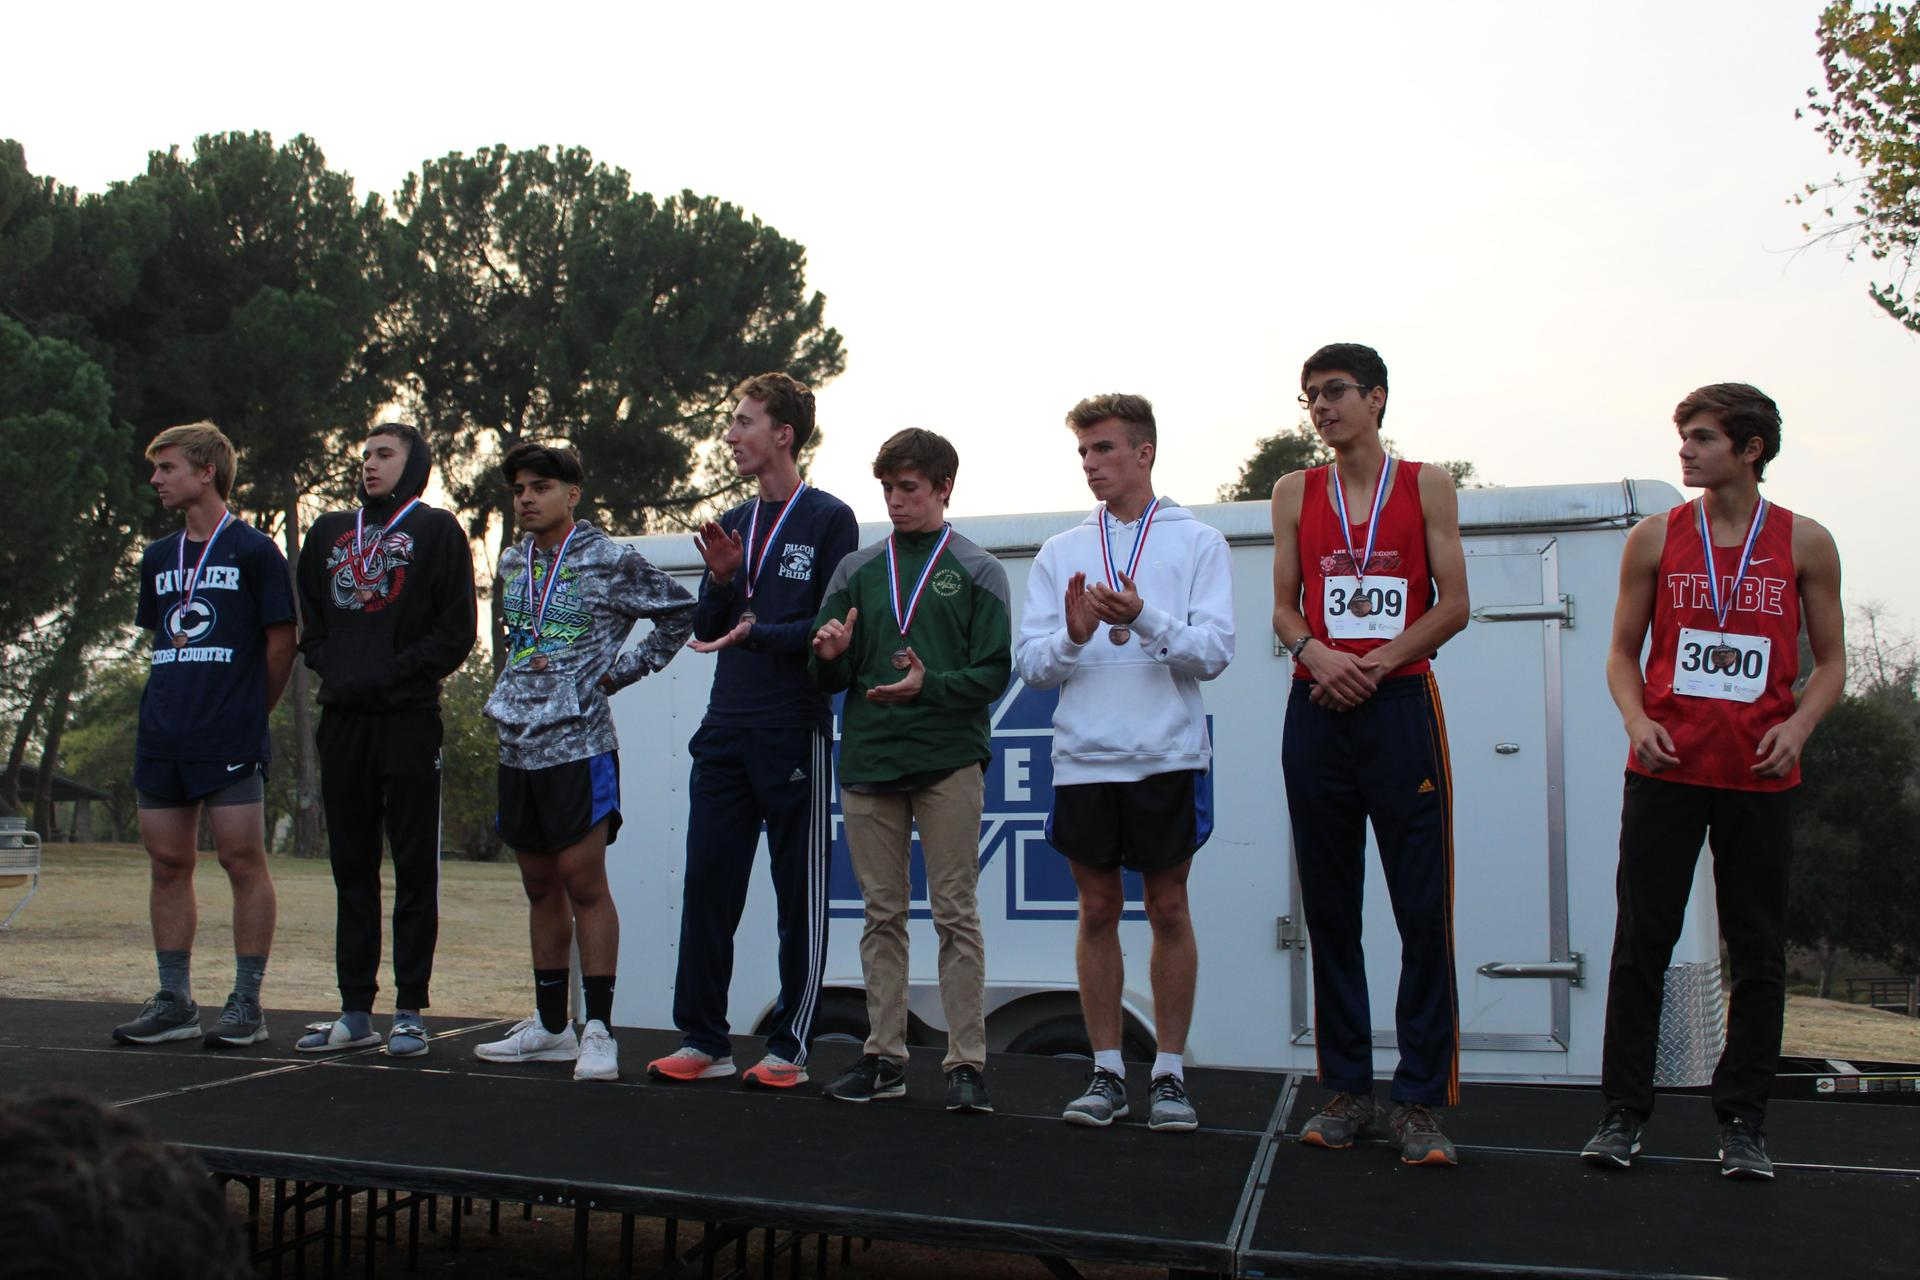 CUHS runners receiving their individual awards.